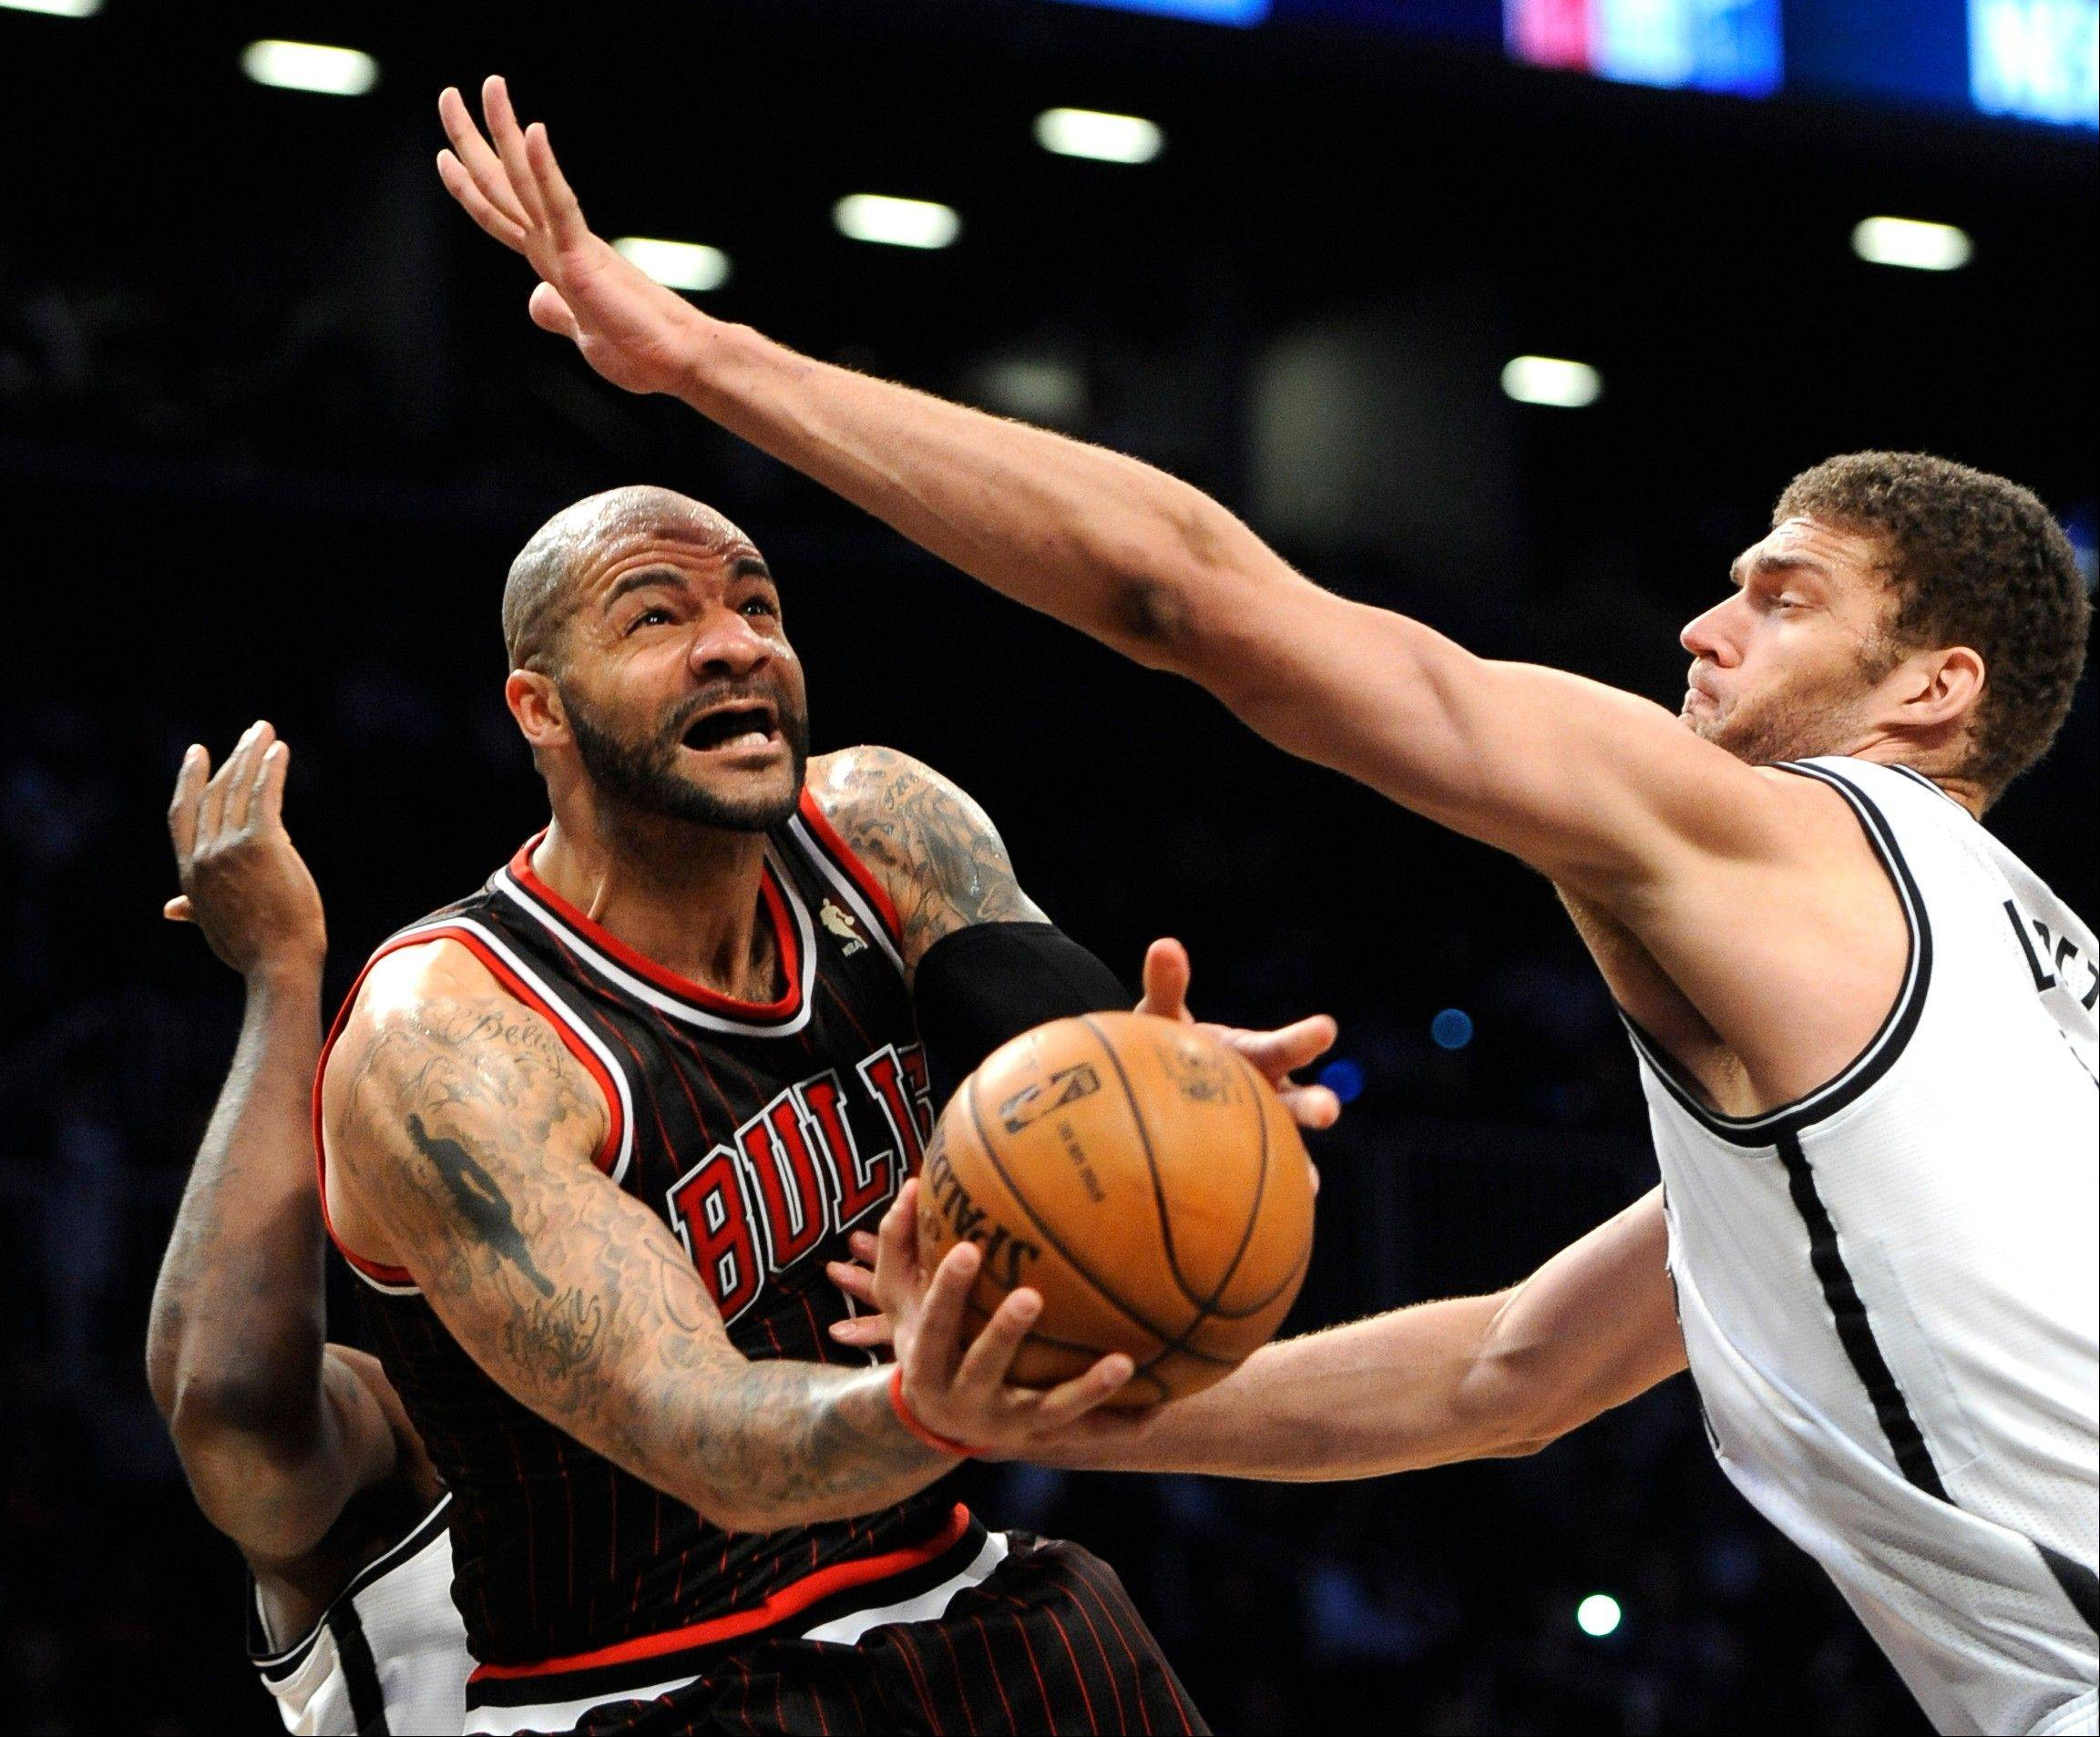 The Bulls' Carlos Boozer, left, tries to maneuver under pressure from Brook Lopez of the Brooklyn Nets.